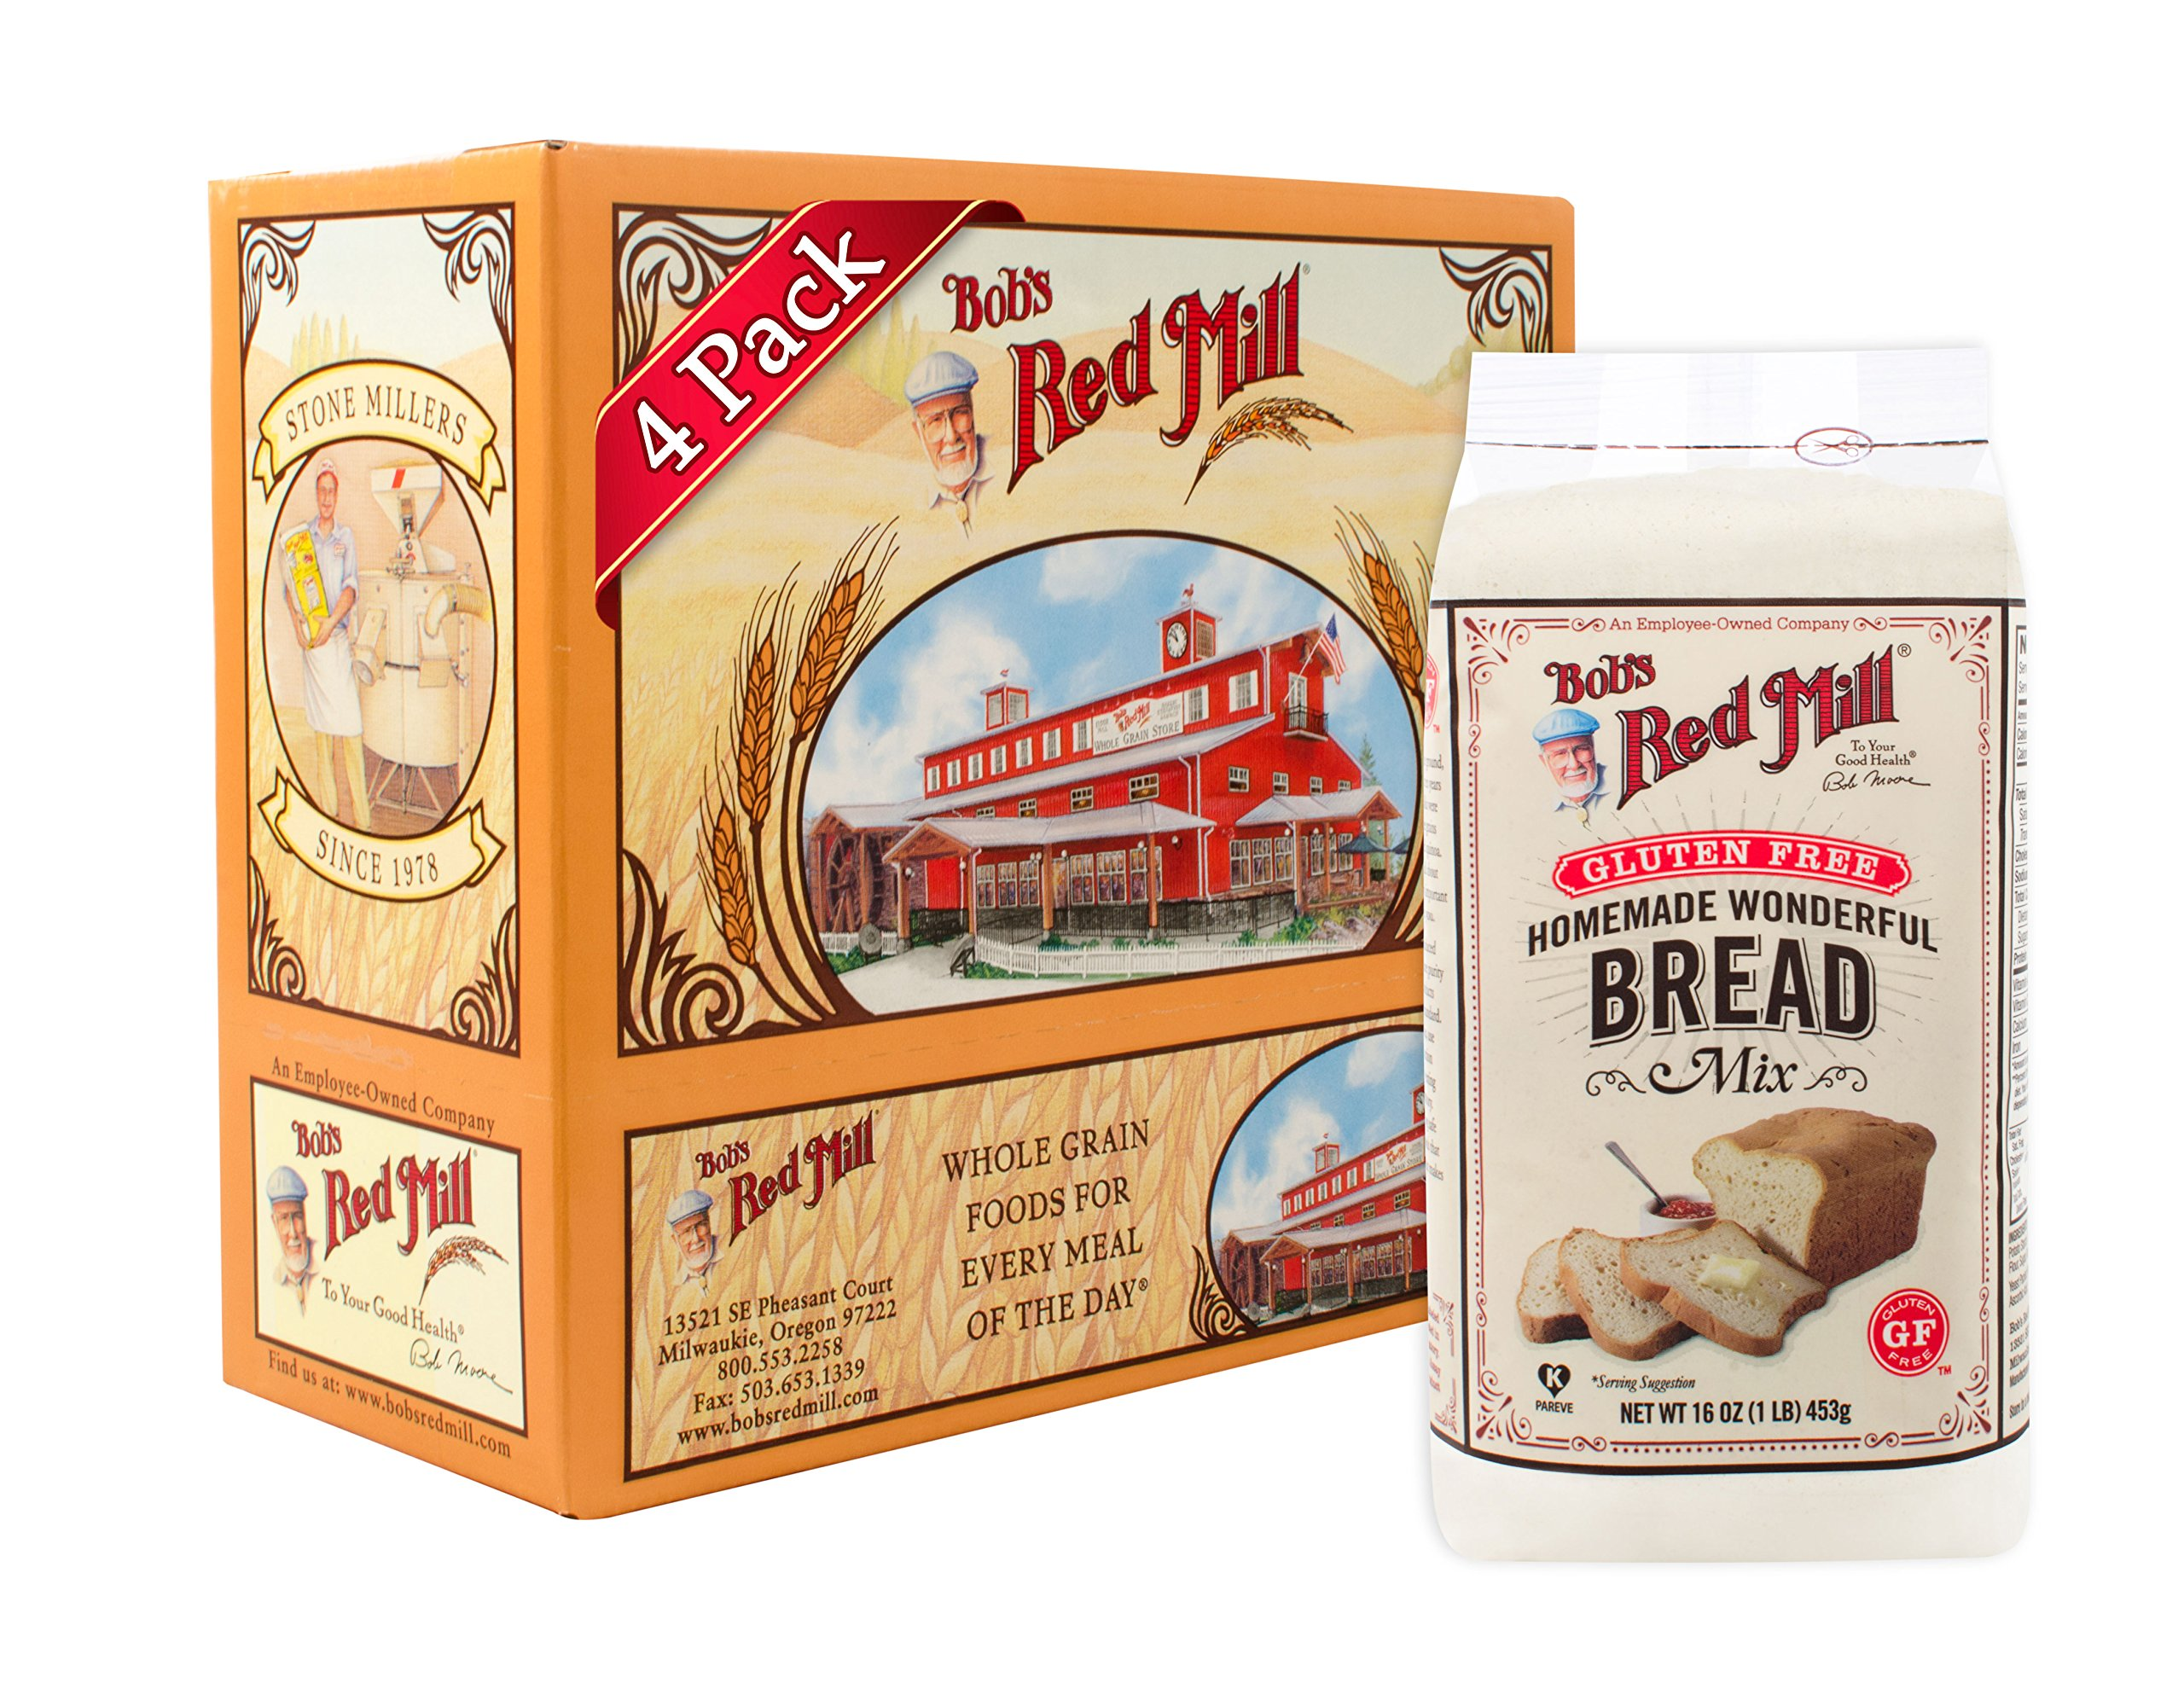 Bob's Red Mill Gluten Free Homemade Wonderful Bread Mix, 16-ounce (Pack of 4) by Bob's Red Mill